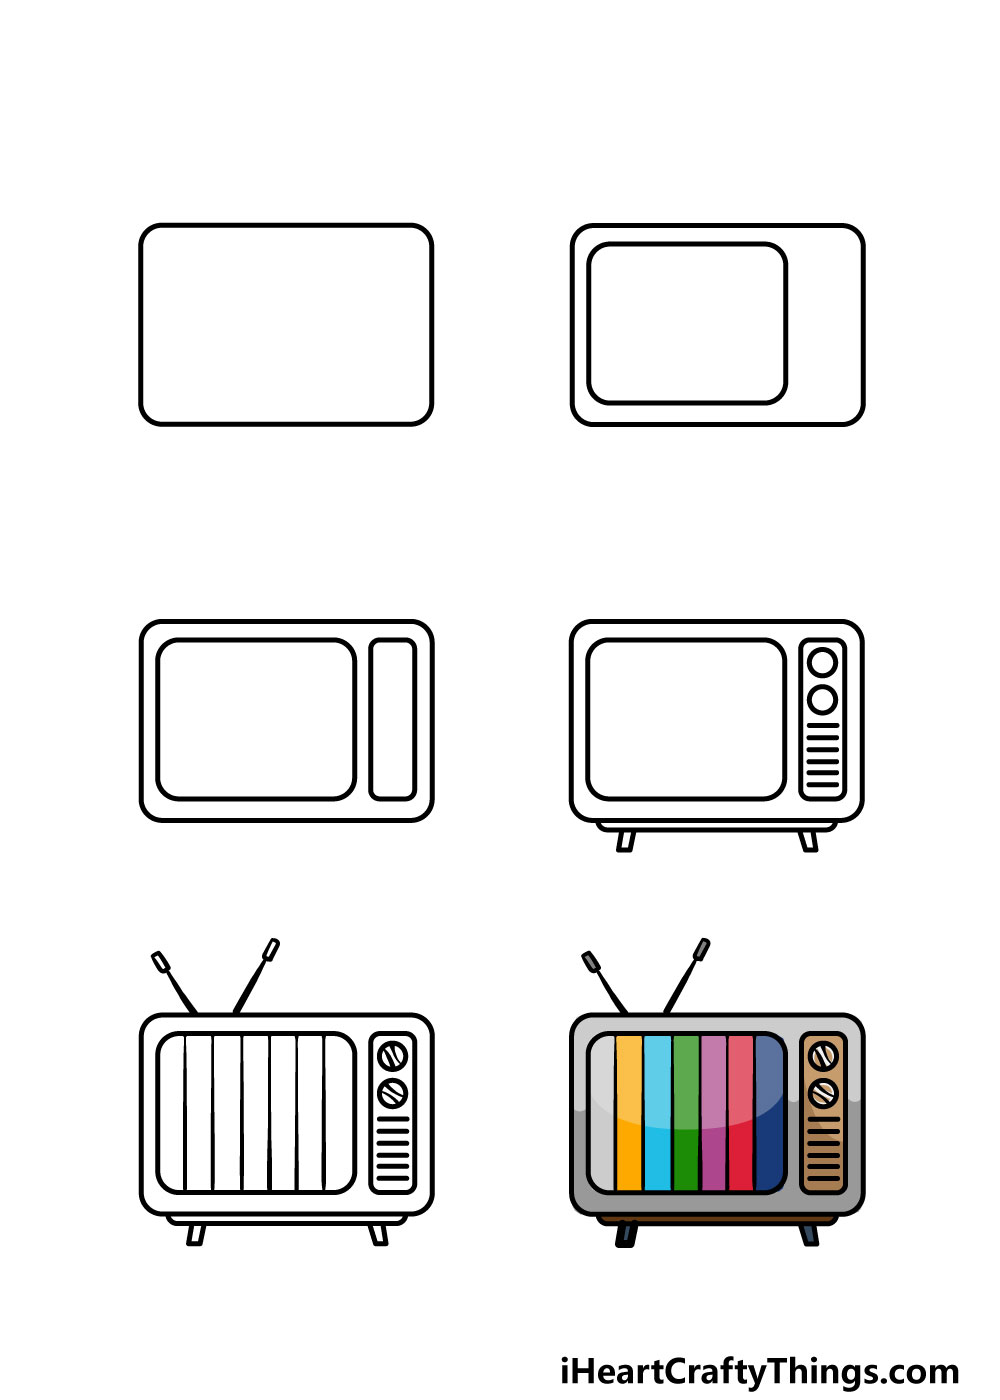 how to draw a TV in 6 steps